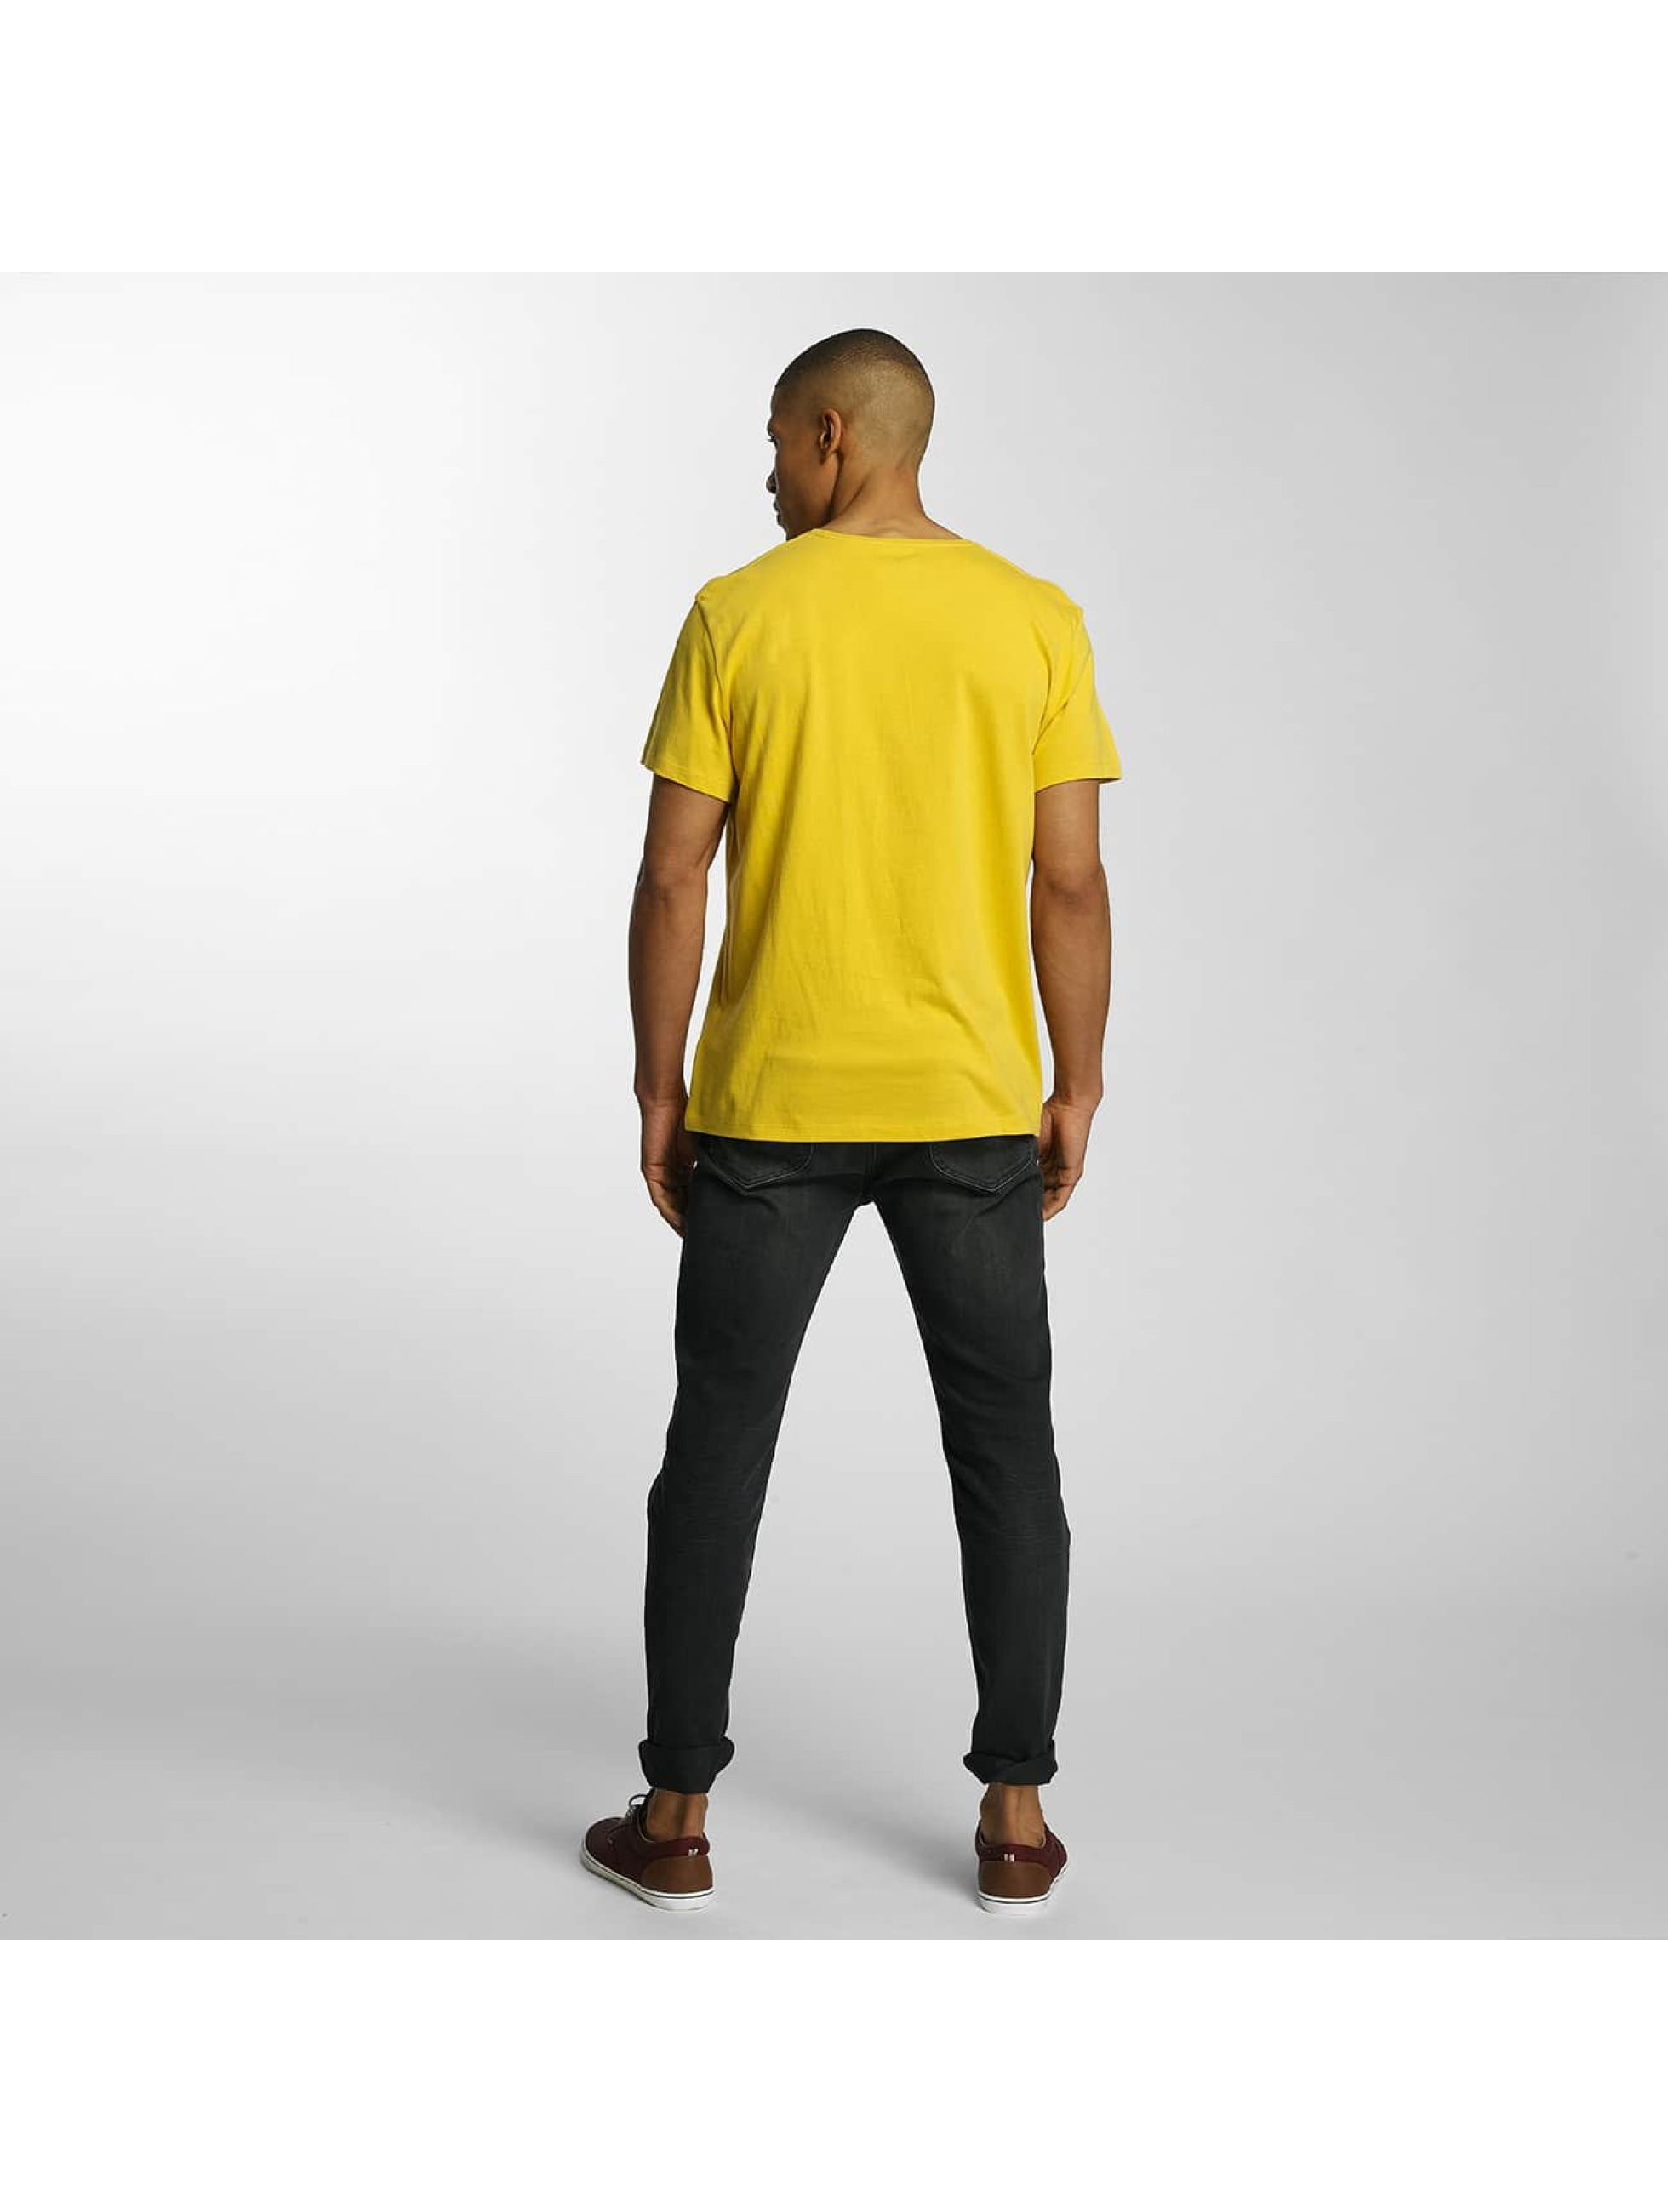 Timberland T-Shirt Big Logo yellow